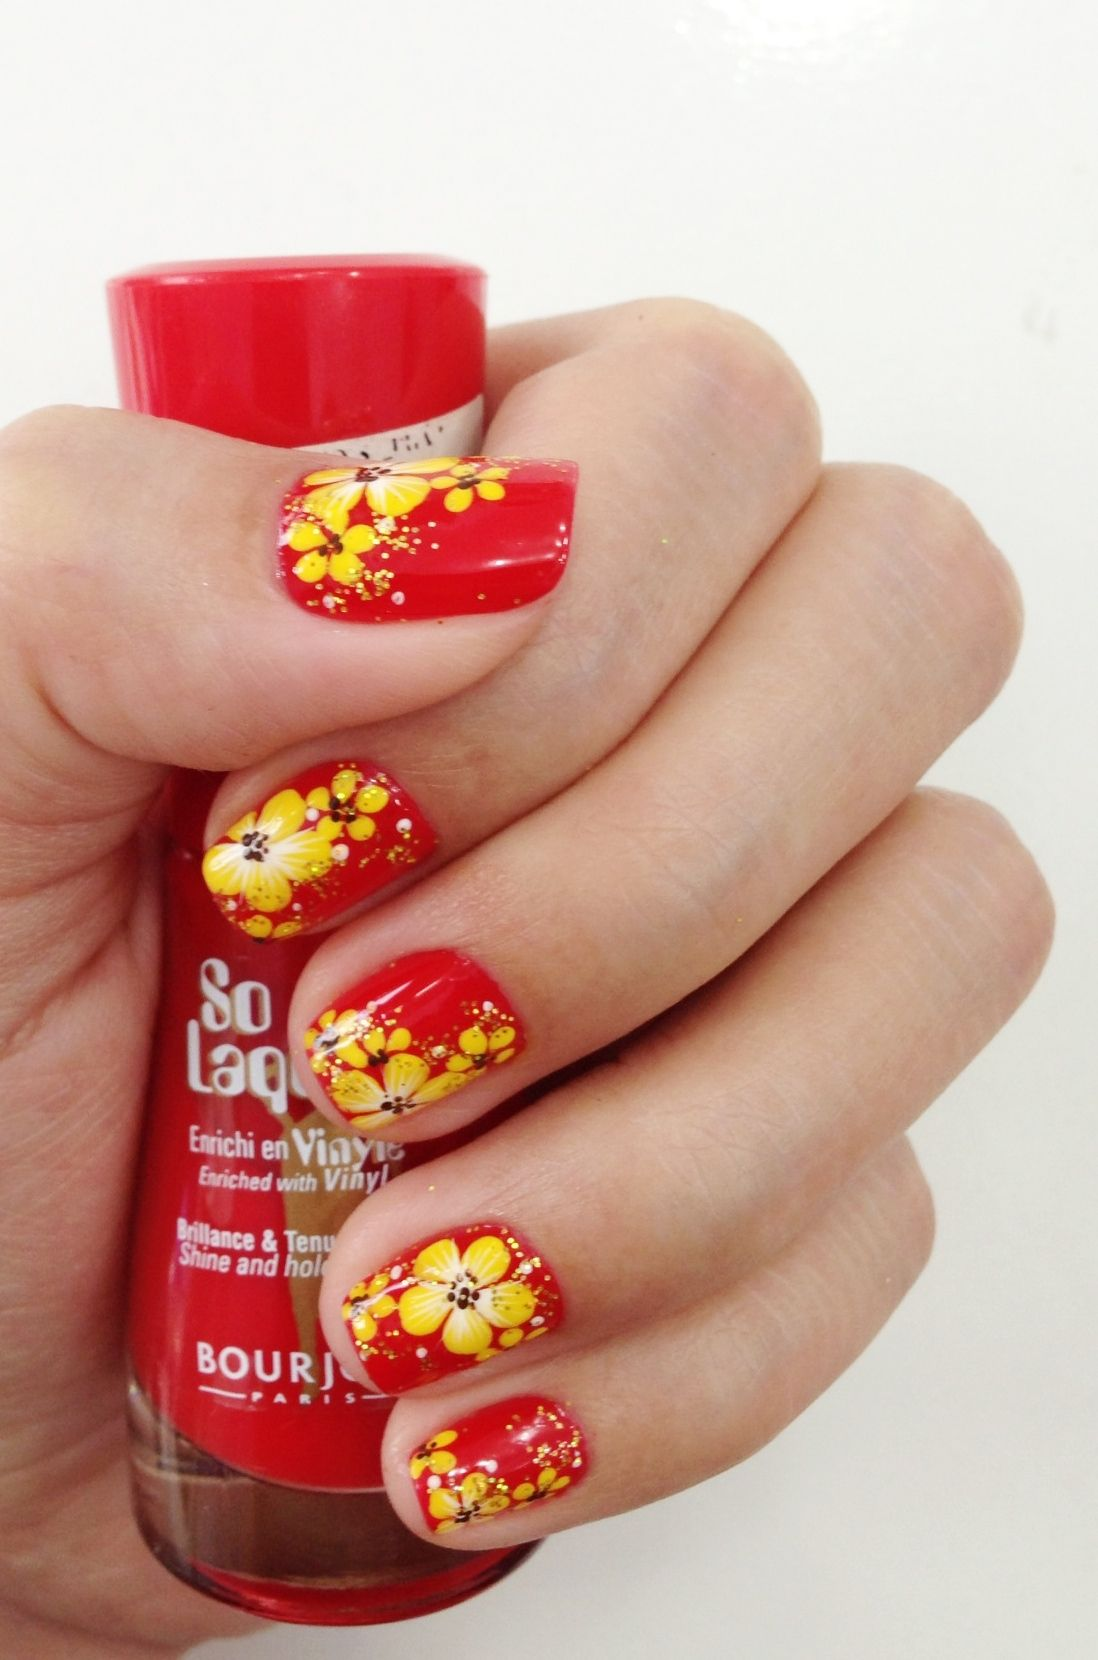 Traditional Vietnamese Nail Art for Tet holiday (Chinese